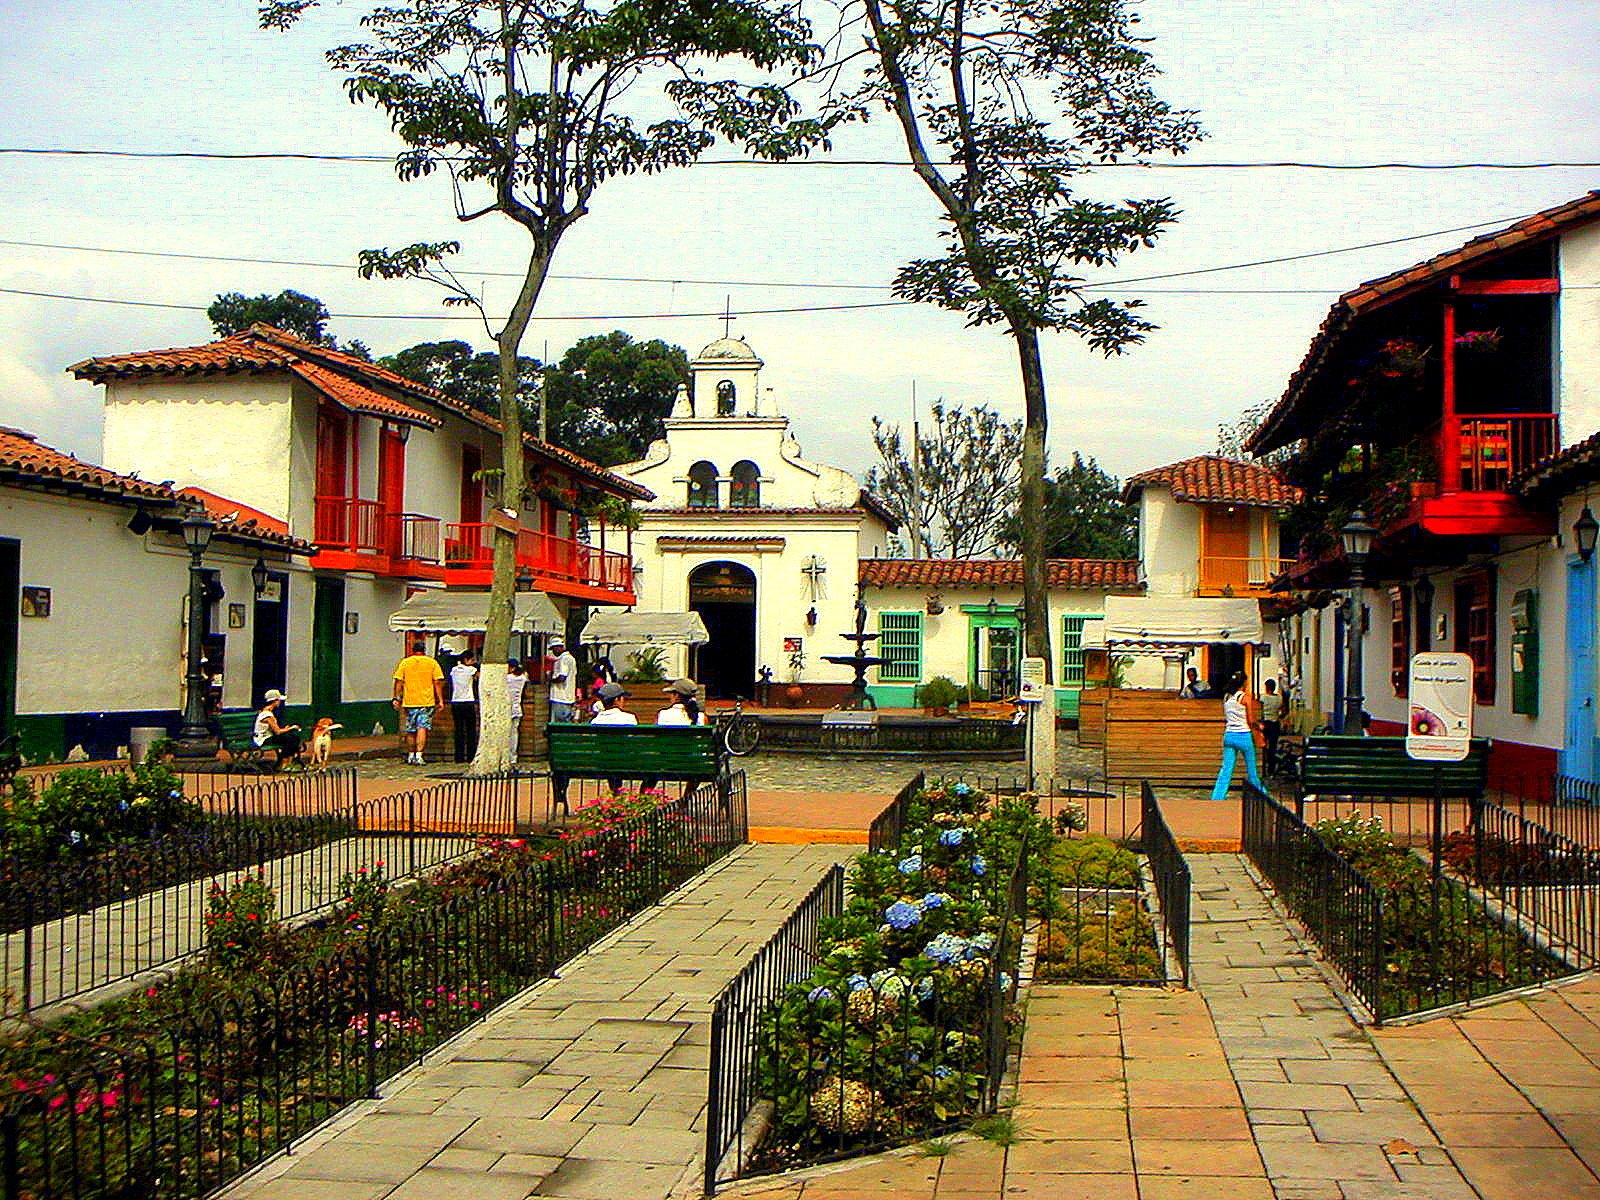 Pueblito paisa in Medellín, a place of traditional Antioquia architecture.